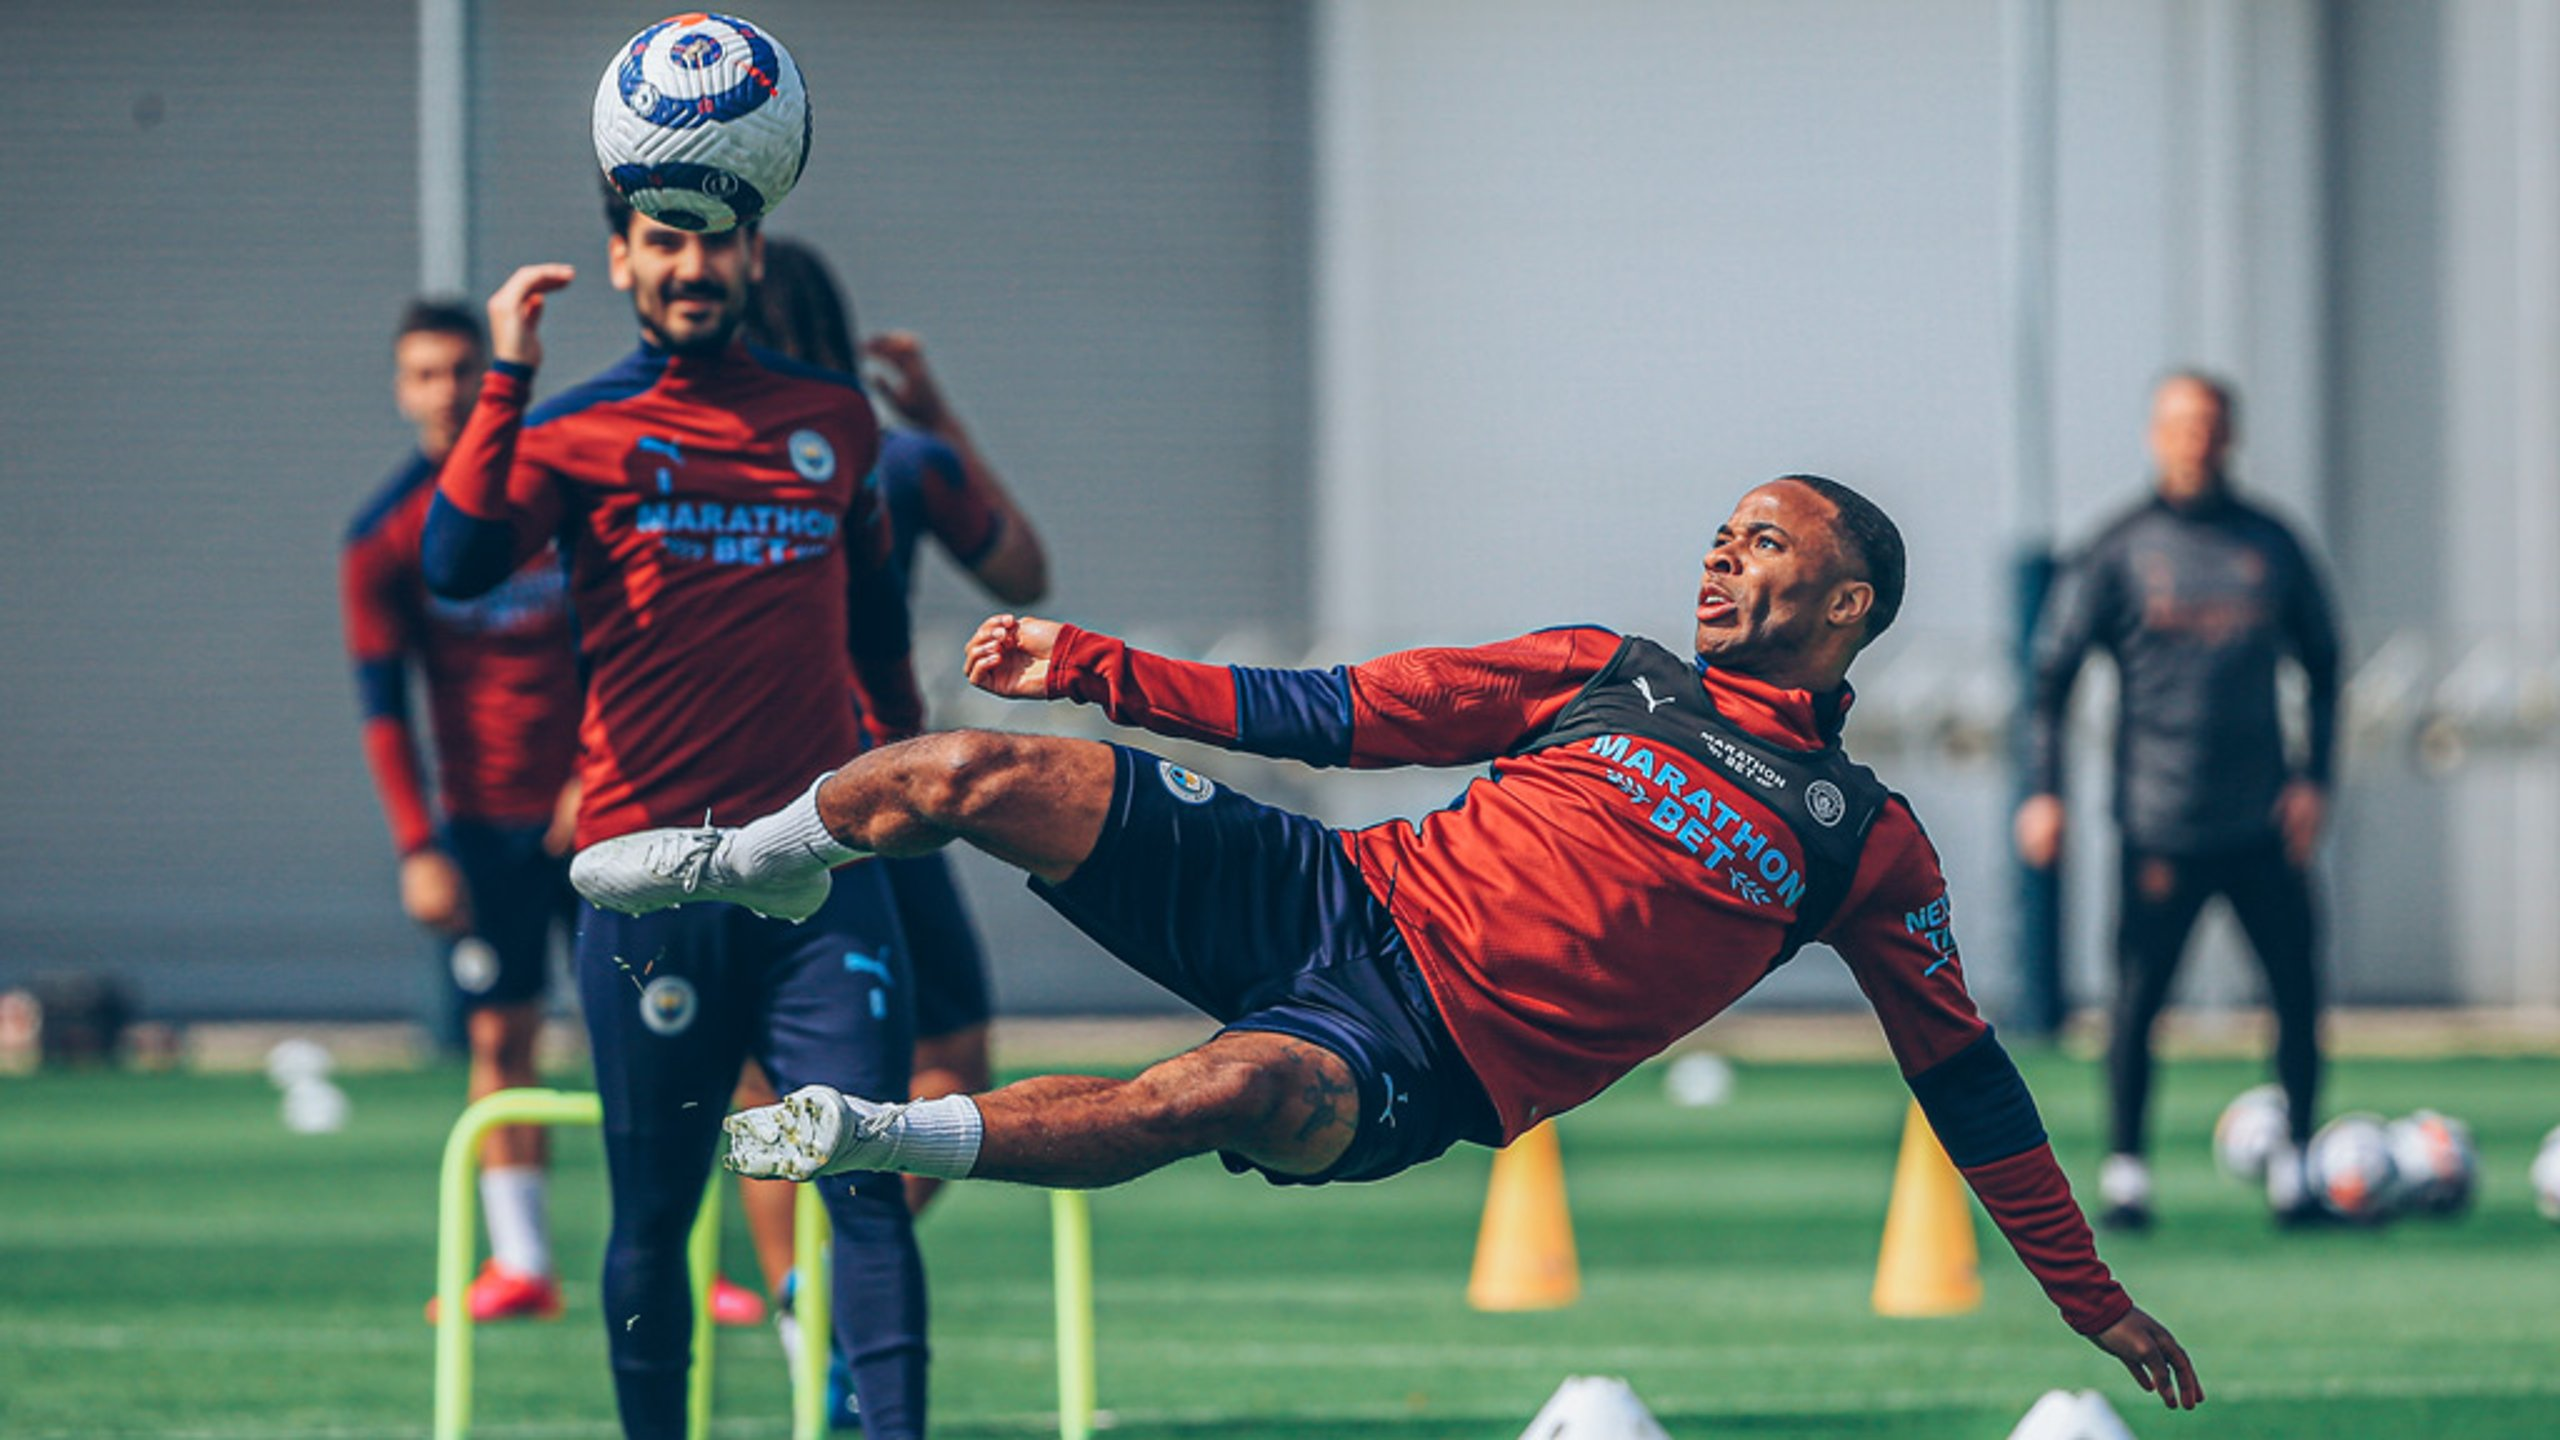 RAZZLE DAZZLE: Raheem Sterling executes a spectacular mid-air volley!